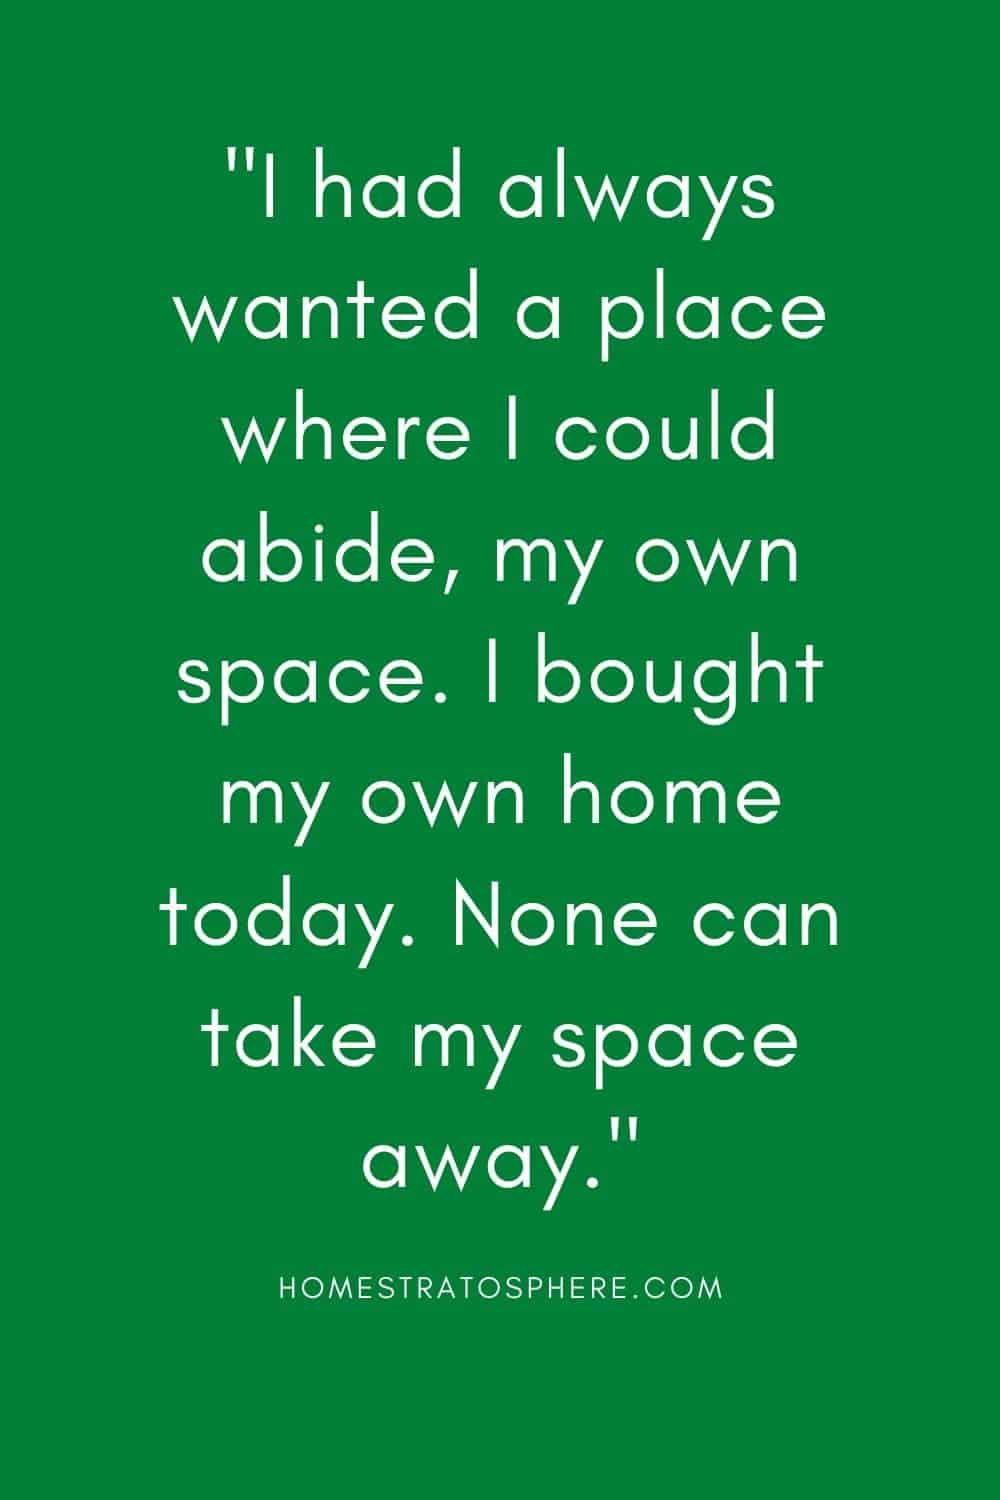 """I had always wanted a place where I could abide, my own space. I bought my own home today. None can take my space away."""